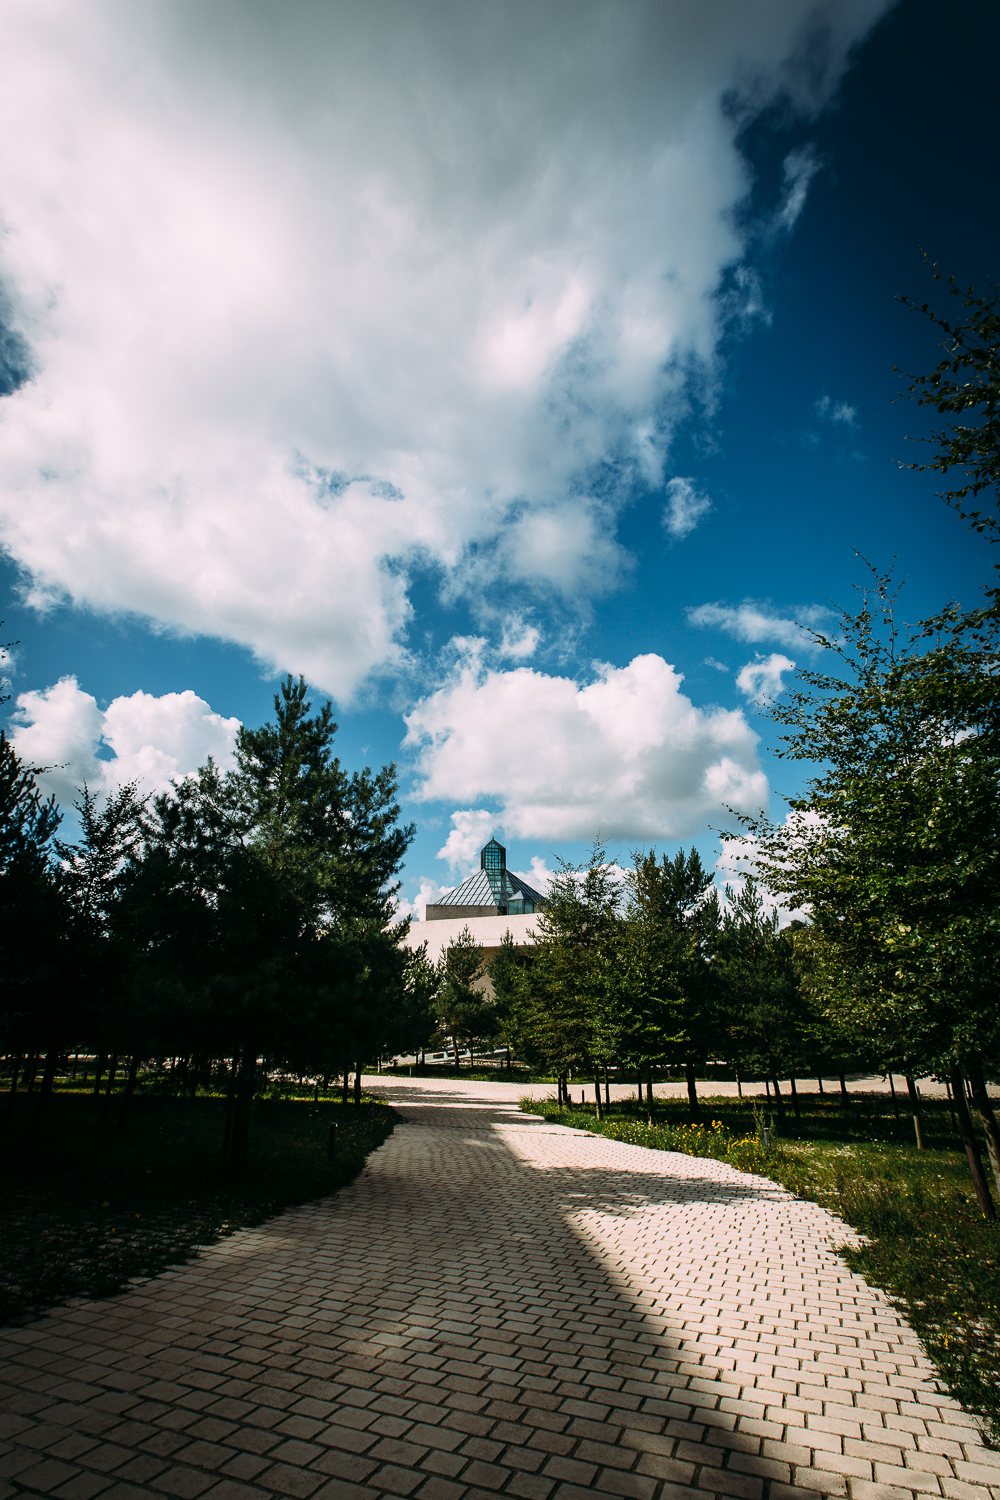 20140819 - Location Scouting-60.jpg